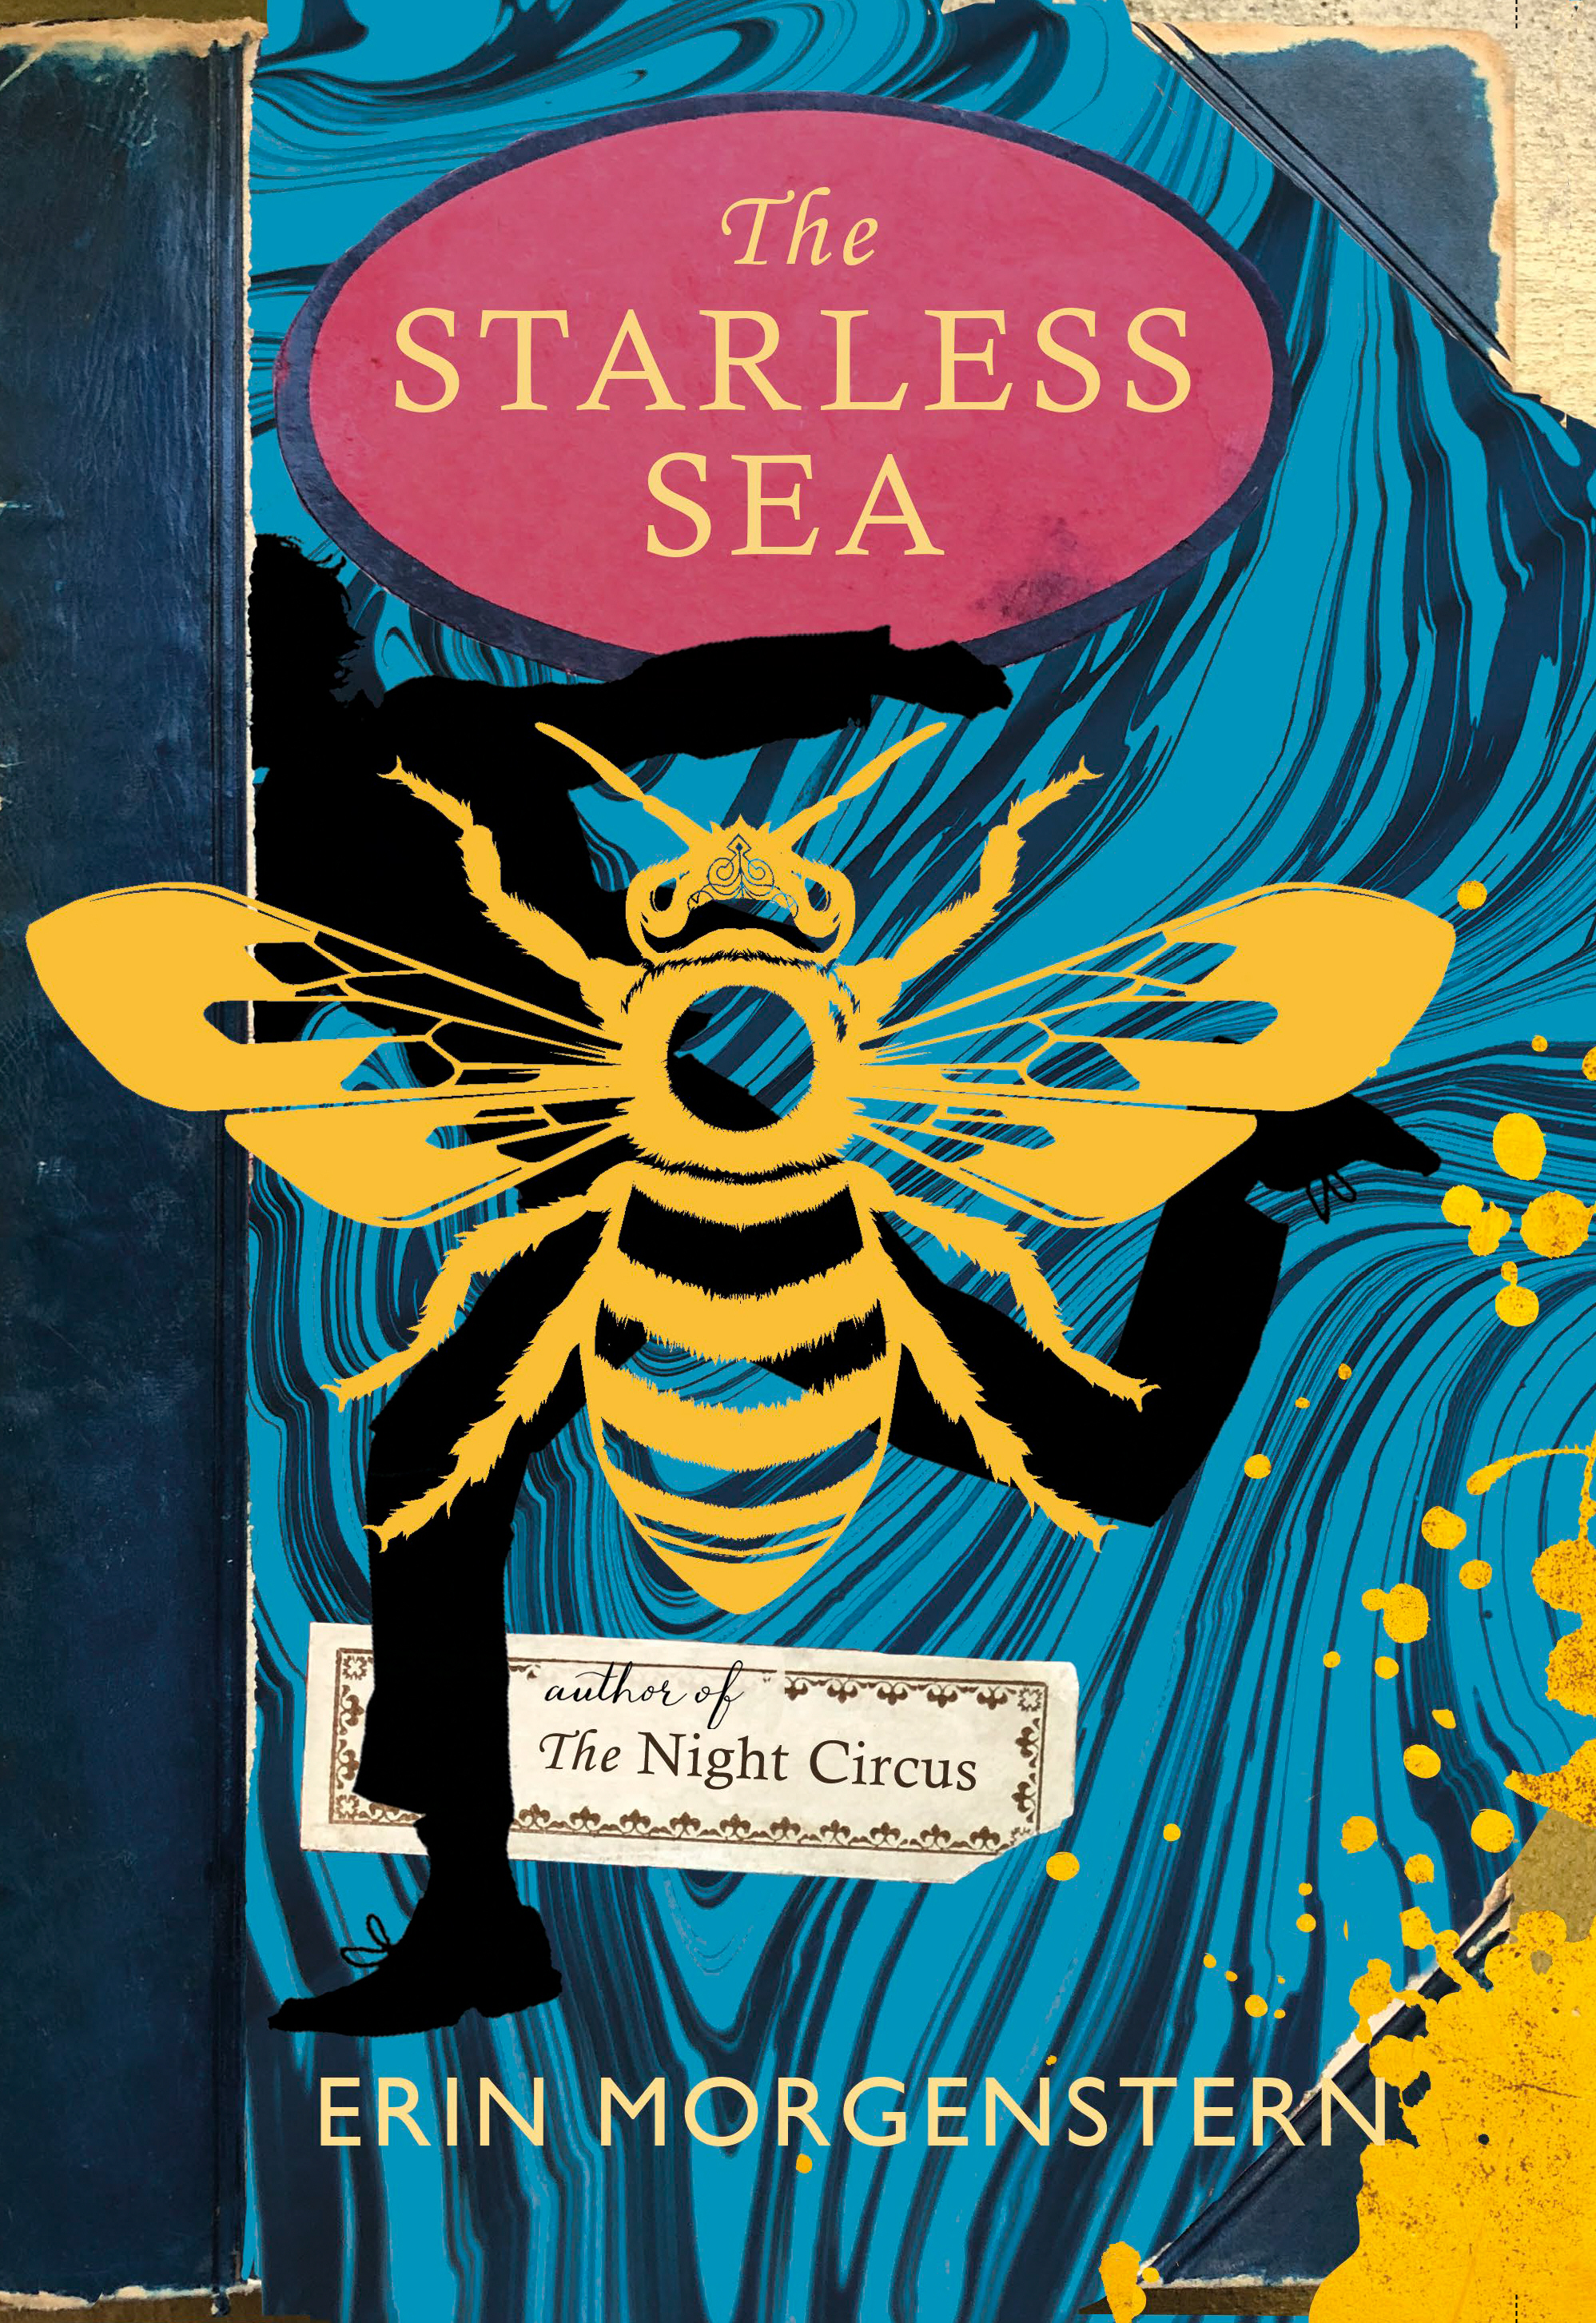 The starless sea jacket cover image